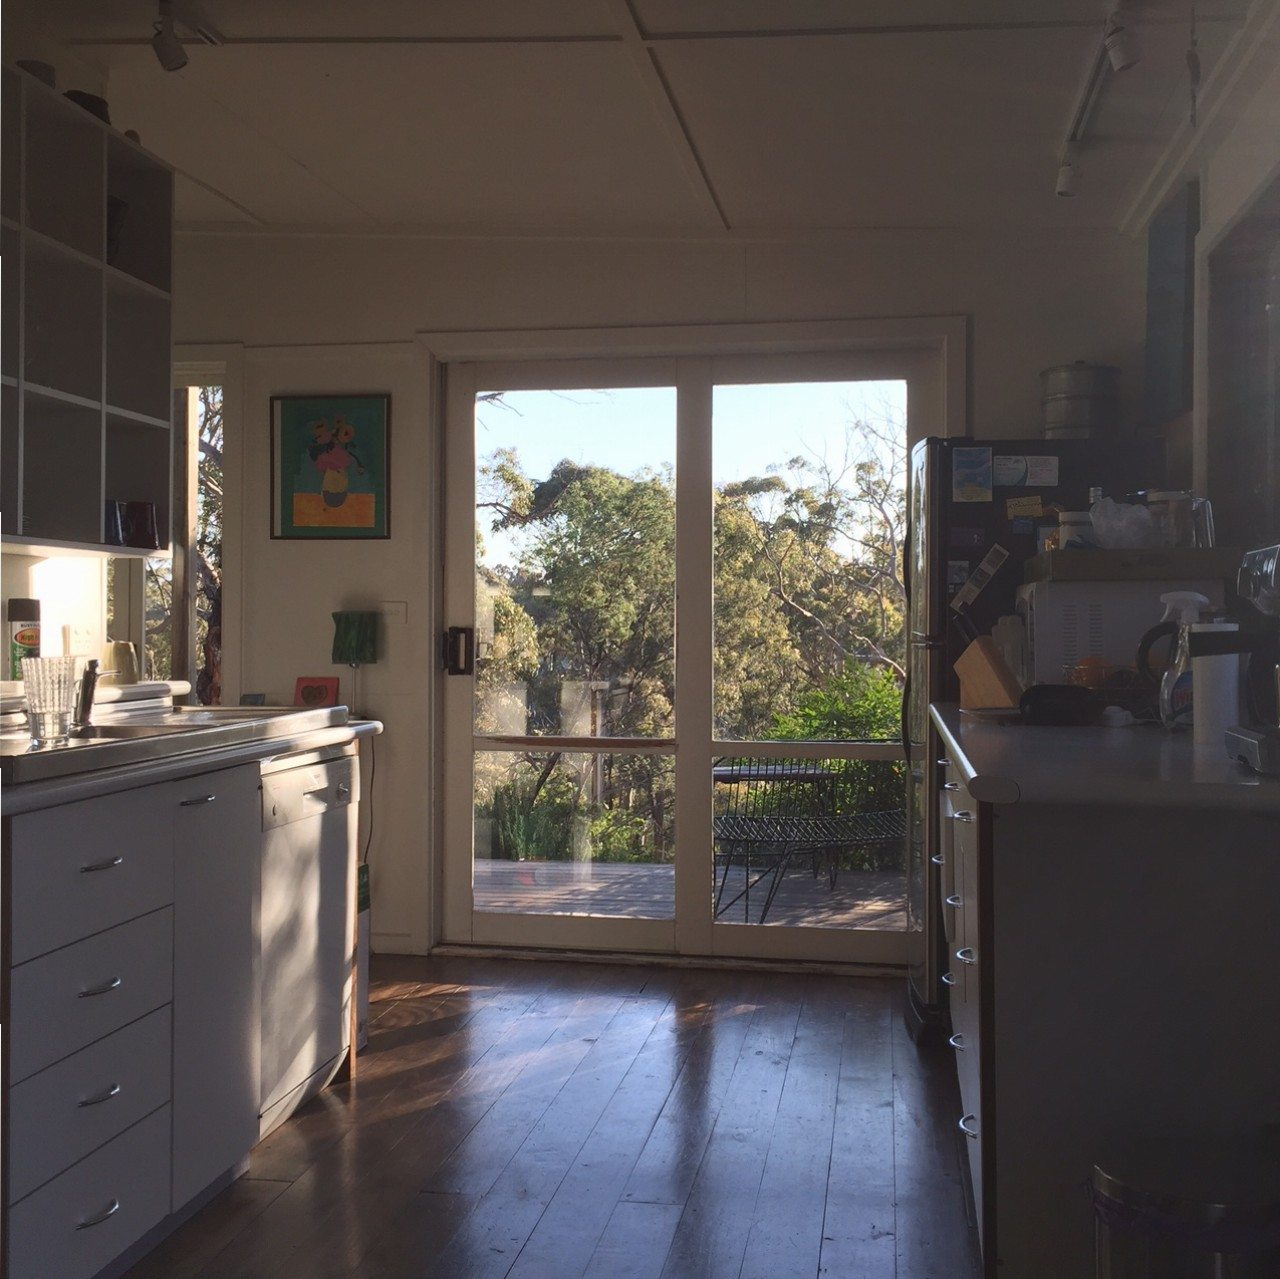 House tour of Bohemia, a retro holiday home in Daylesford